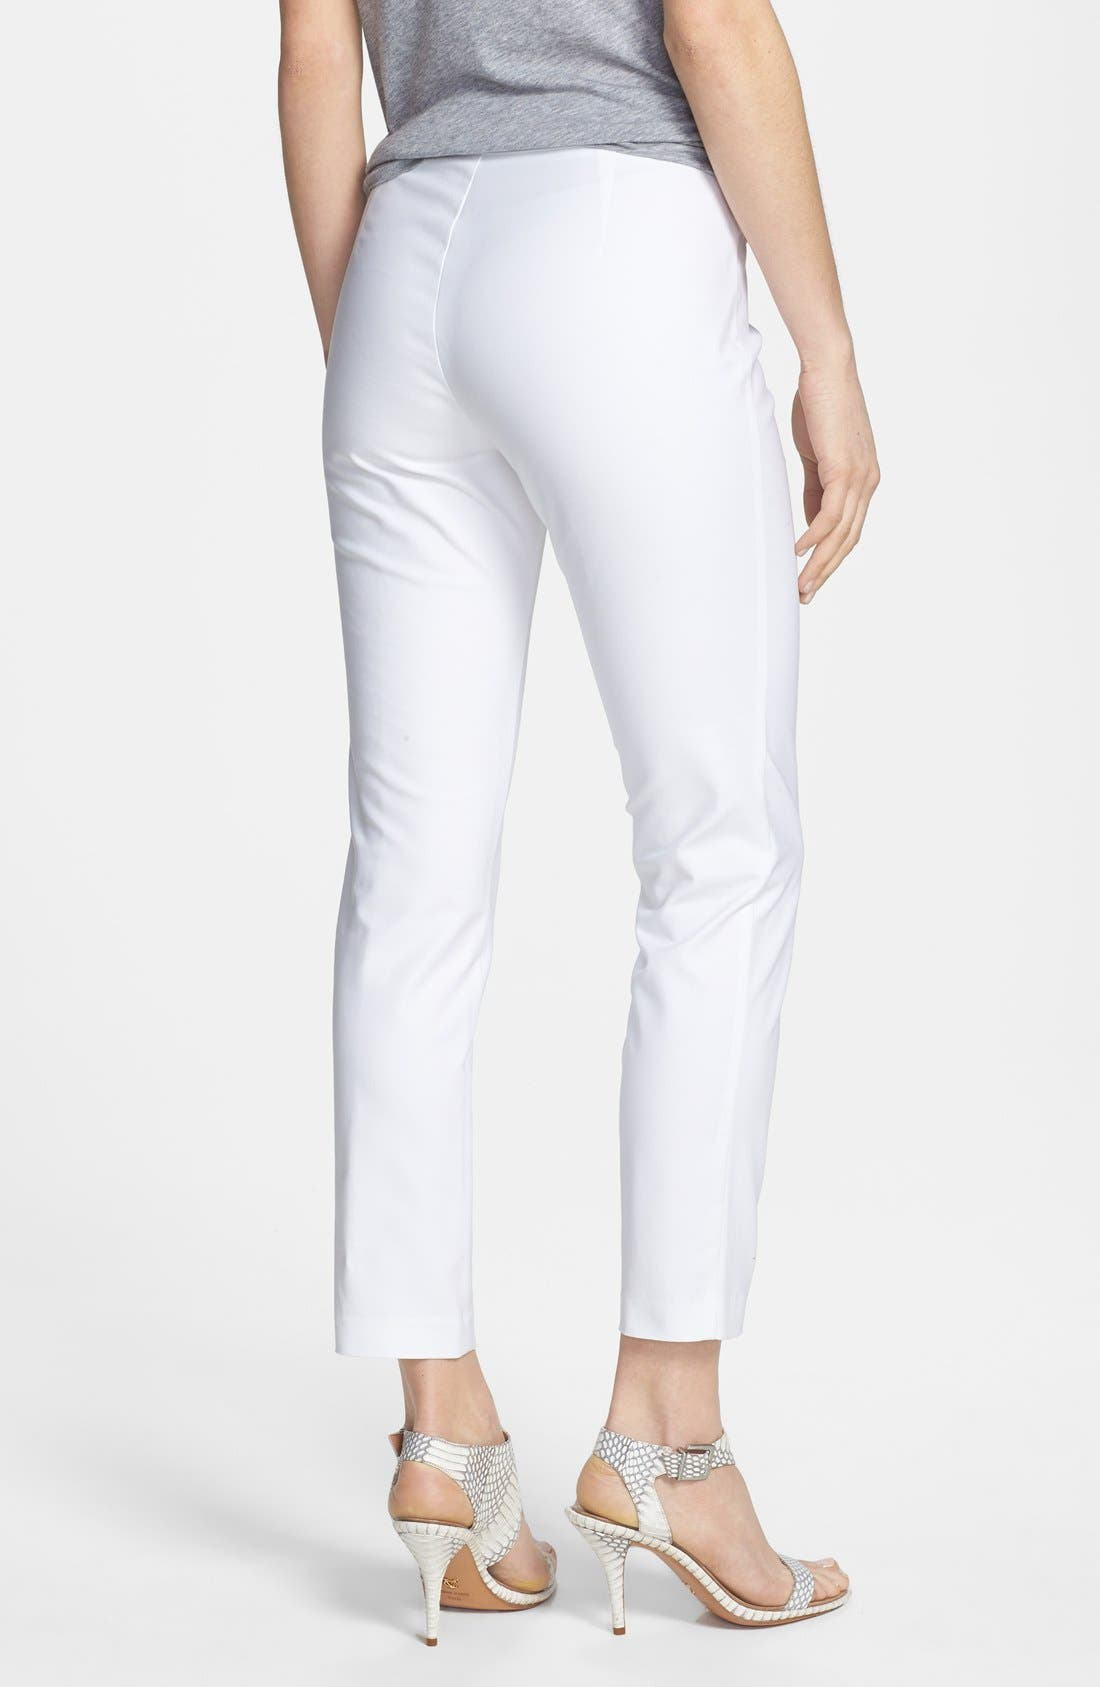 Alternate Image 2  - Kenneth Cole New York 'Khloee' Crop Stretch Cotton Pants (Petite)